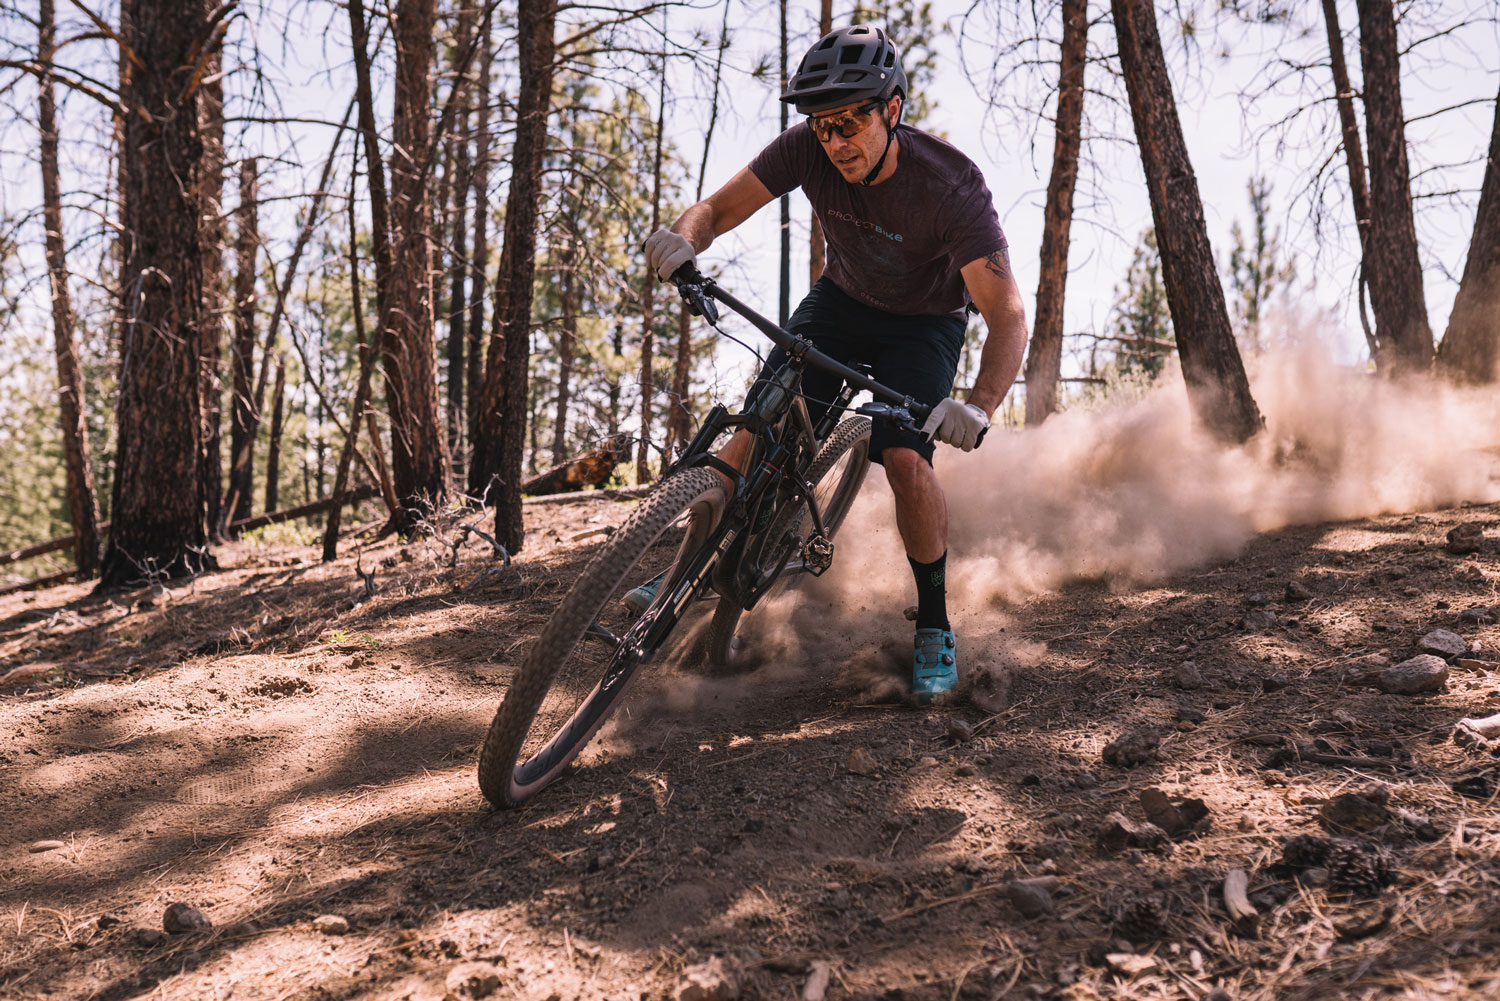 Rider fish tailing on the Specialized Epic Evo S-Works